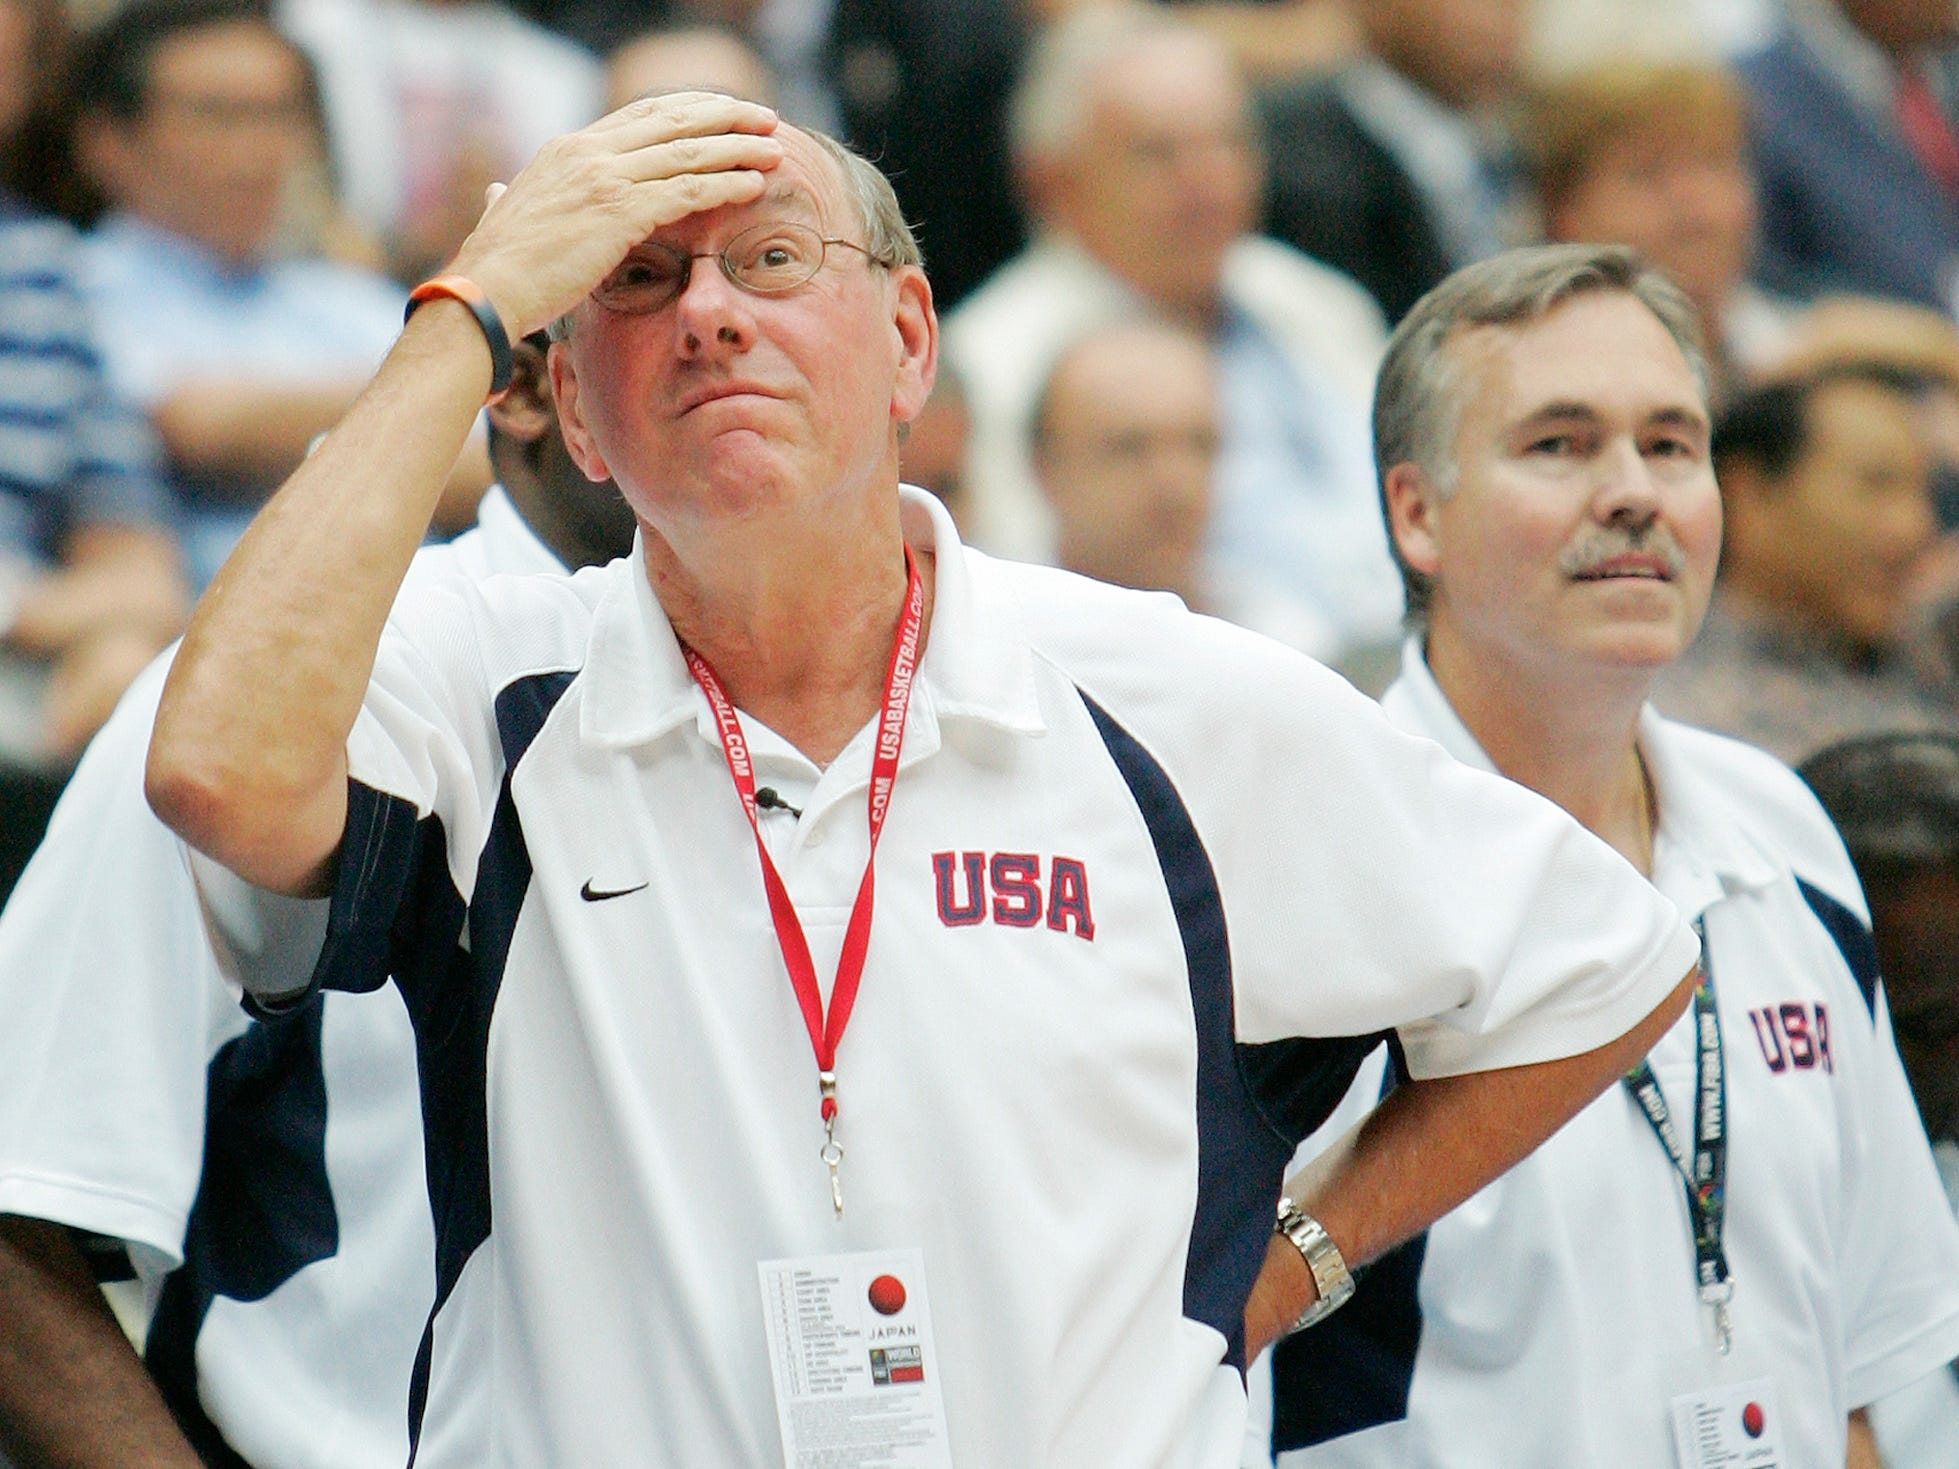 2006: USA assistant coach Jim Boeheim, left, looks up toward the scoreboard as assistant coach Mike D'Antoni look on in the closing seconds against Greece in  the semifinals of the World Basketball Championships in Saitama, Japan, Friday, Sept. 1, 2006. (AP Photo/Mark J. Terrill)